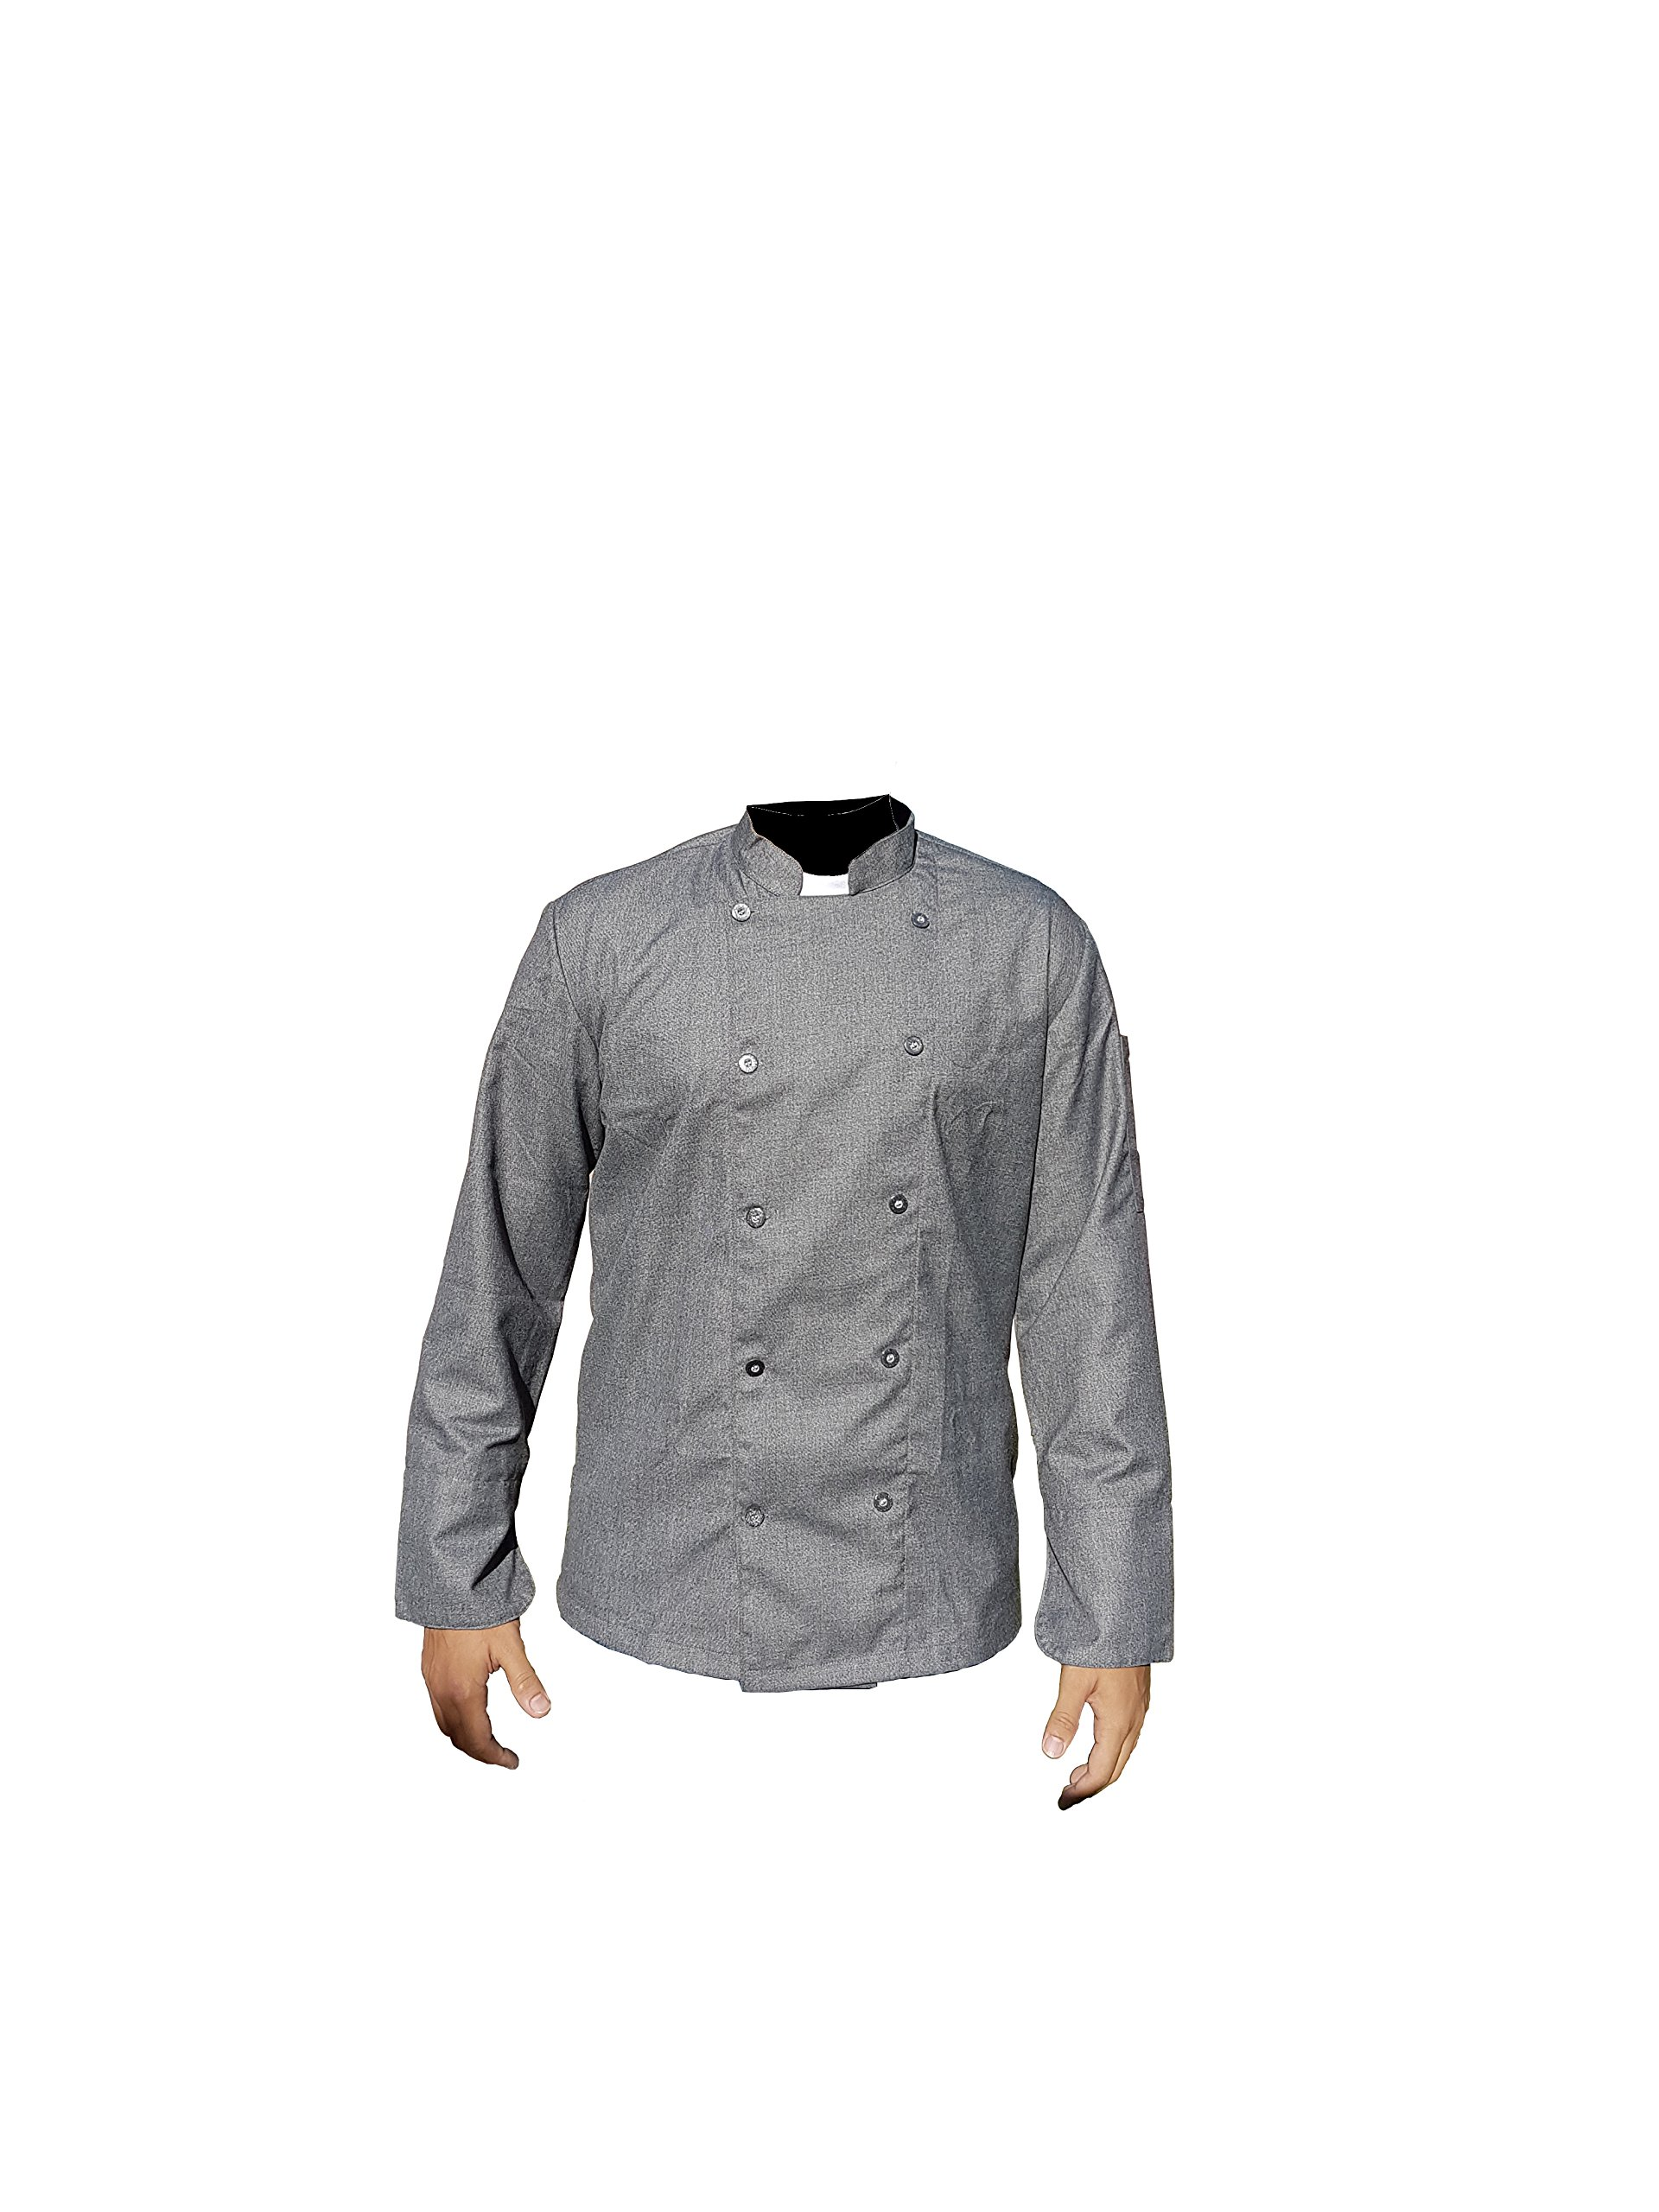 GRAY PROFESSIONAL CHEF COAT/CHEF JACKET